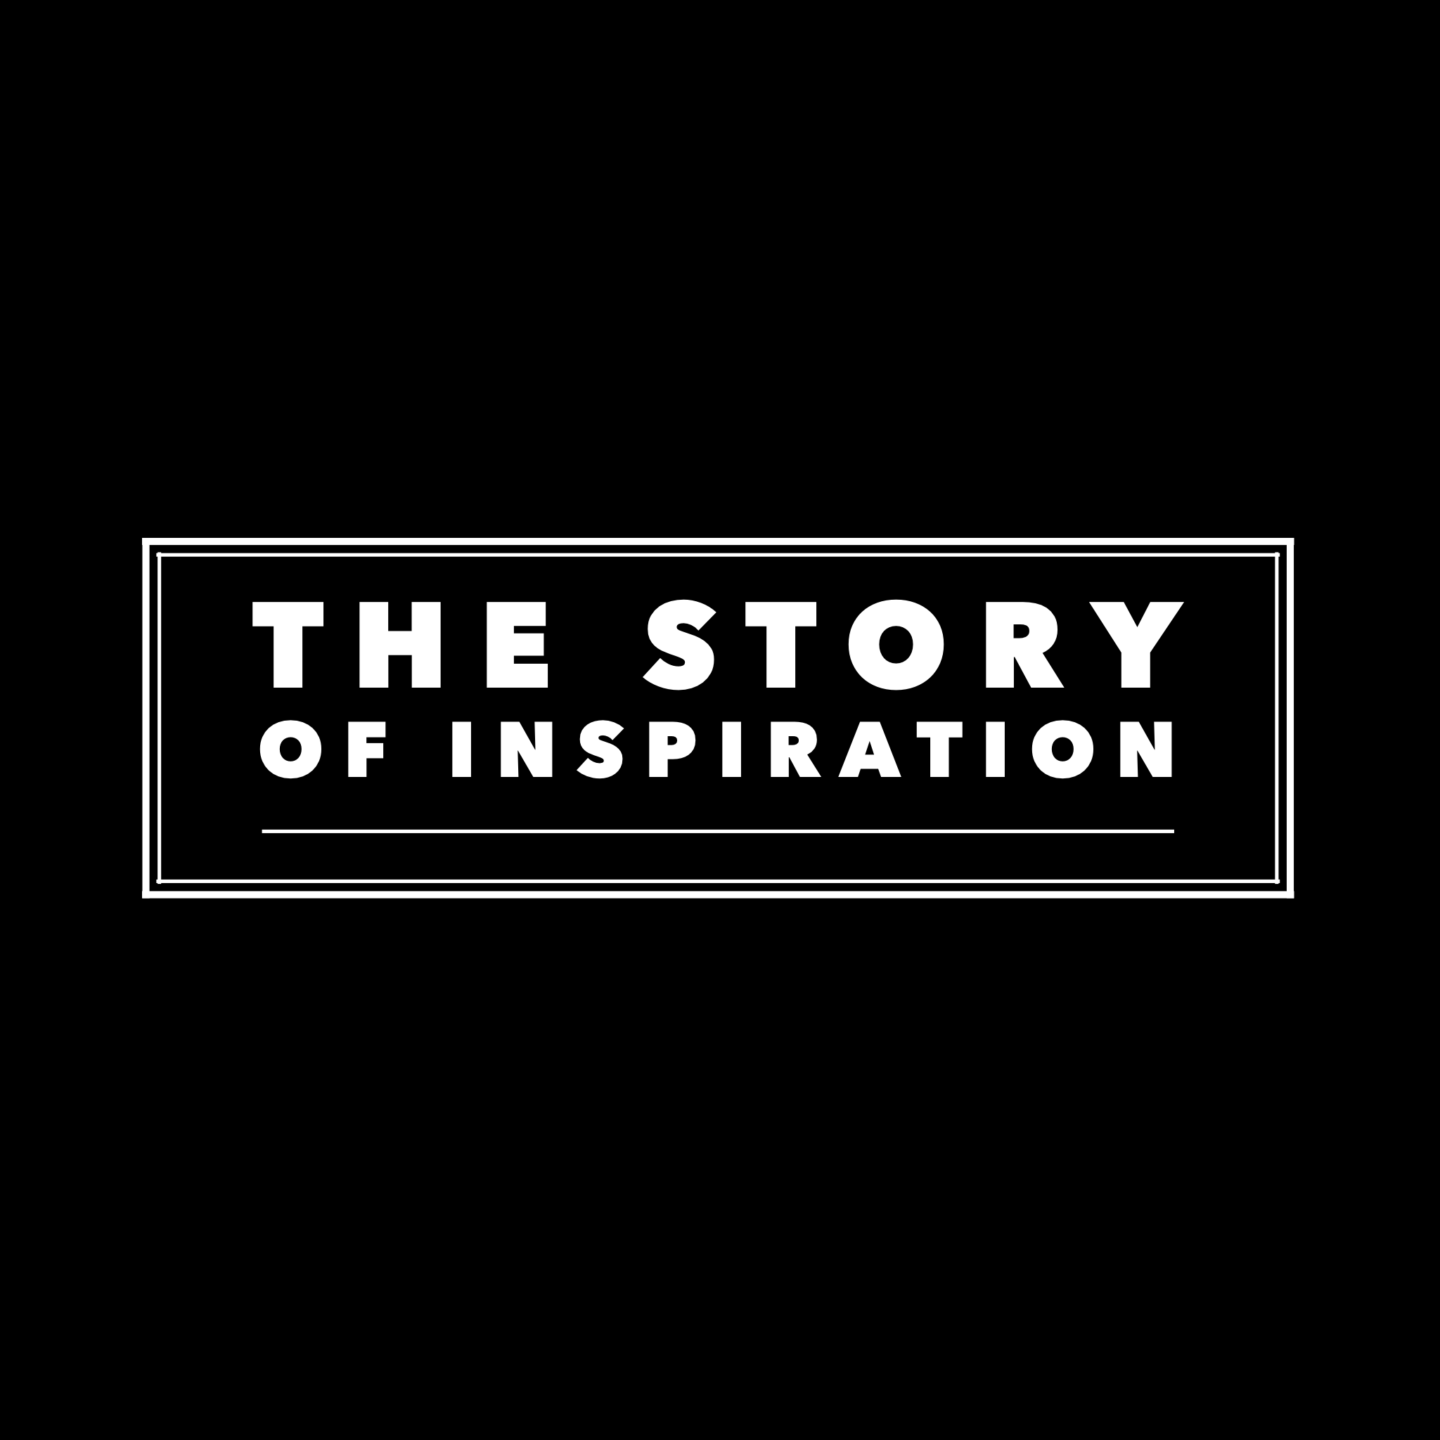 The Story of Inspiration